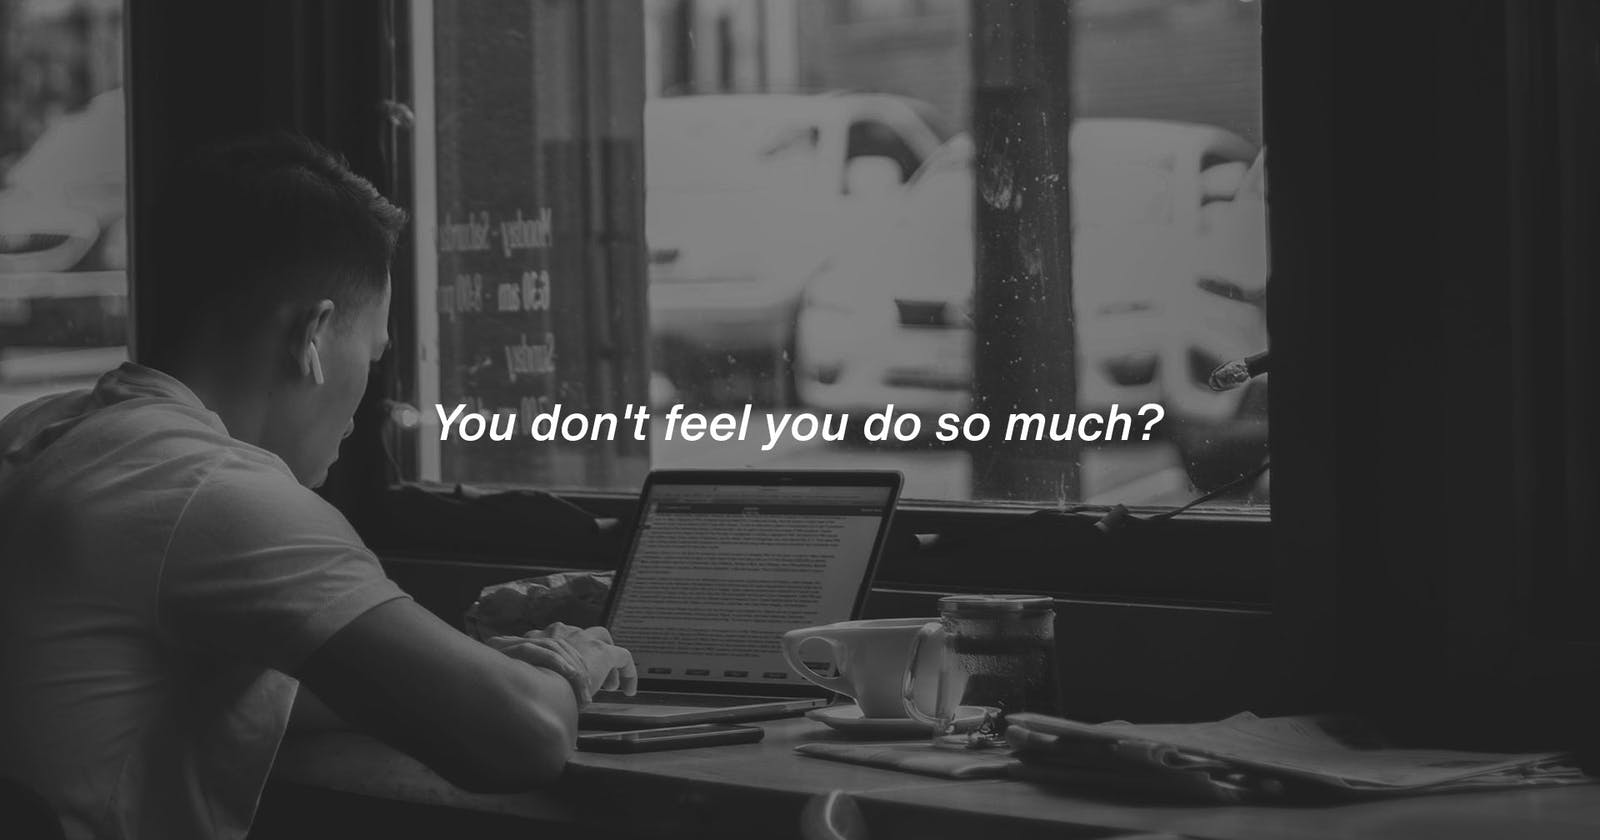 You don't feel you do so much?